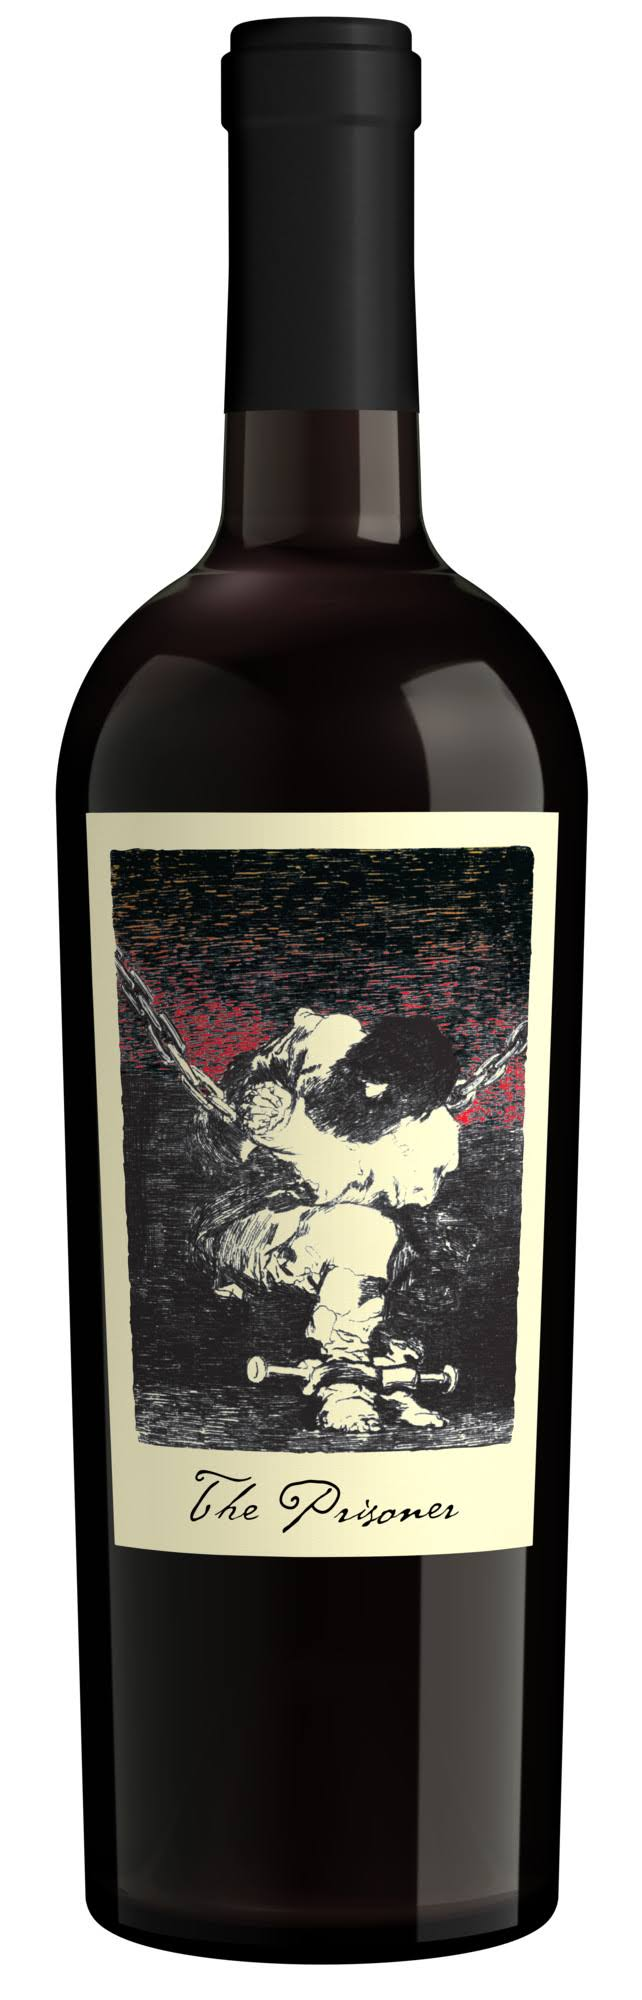 The Prisoner Red Wine, Napa Valley, 2018 - 750 ml